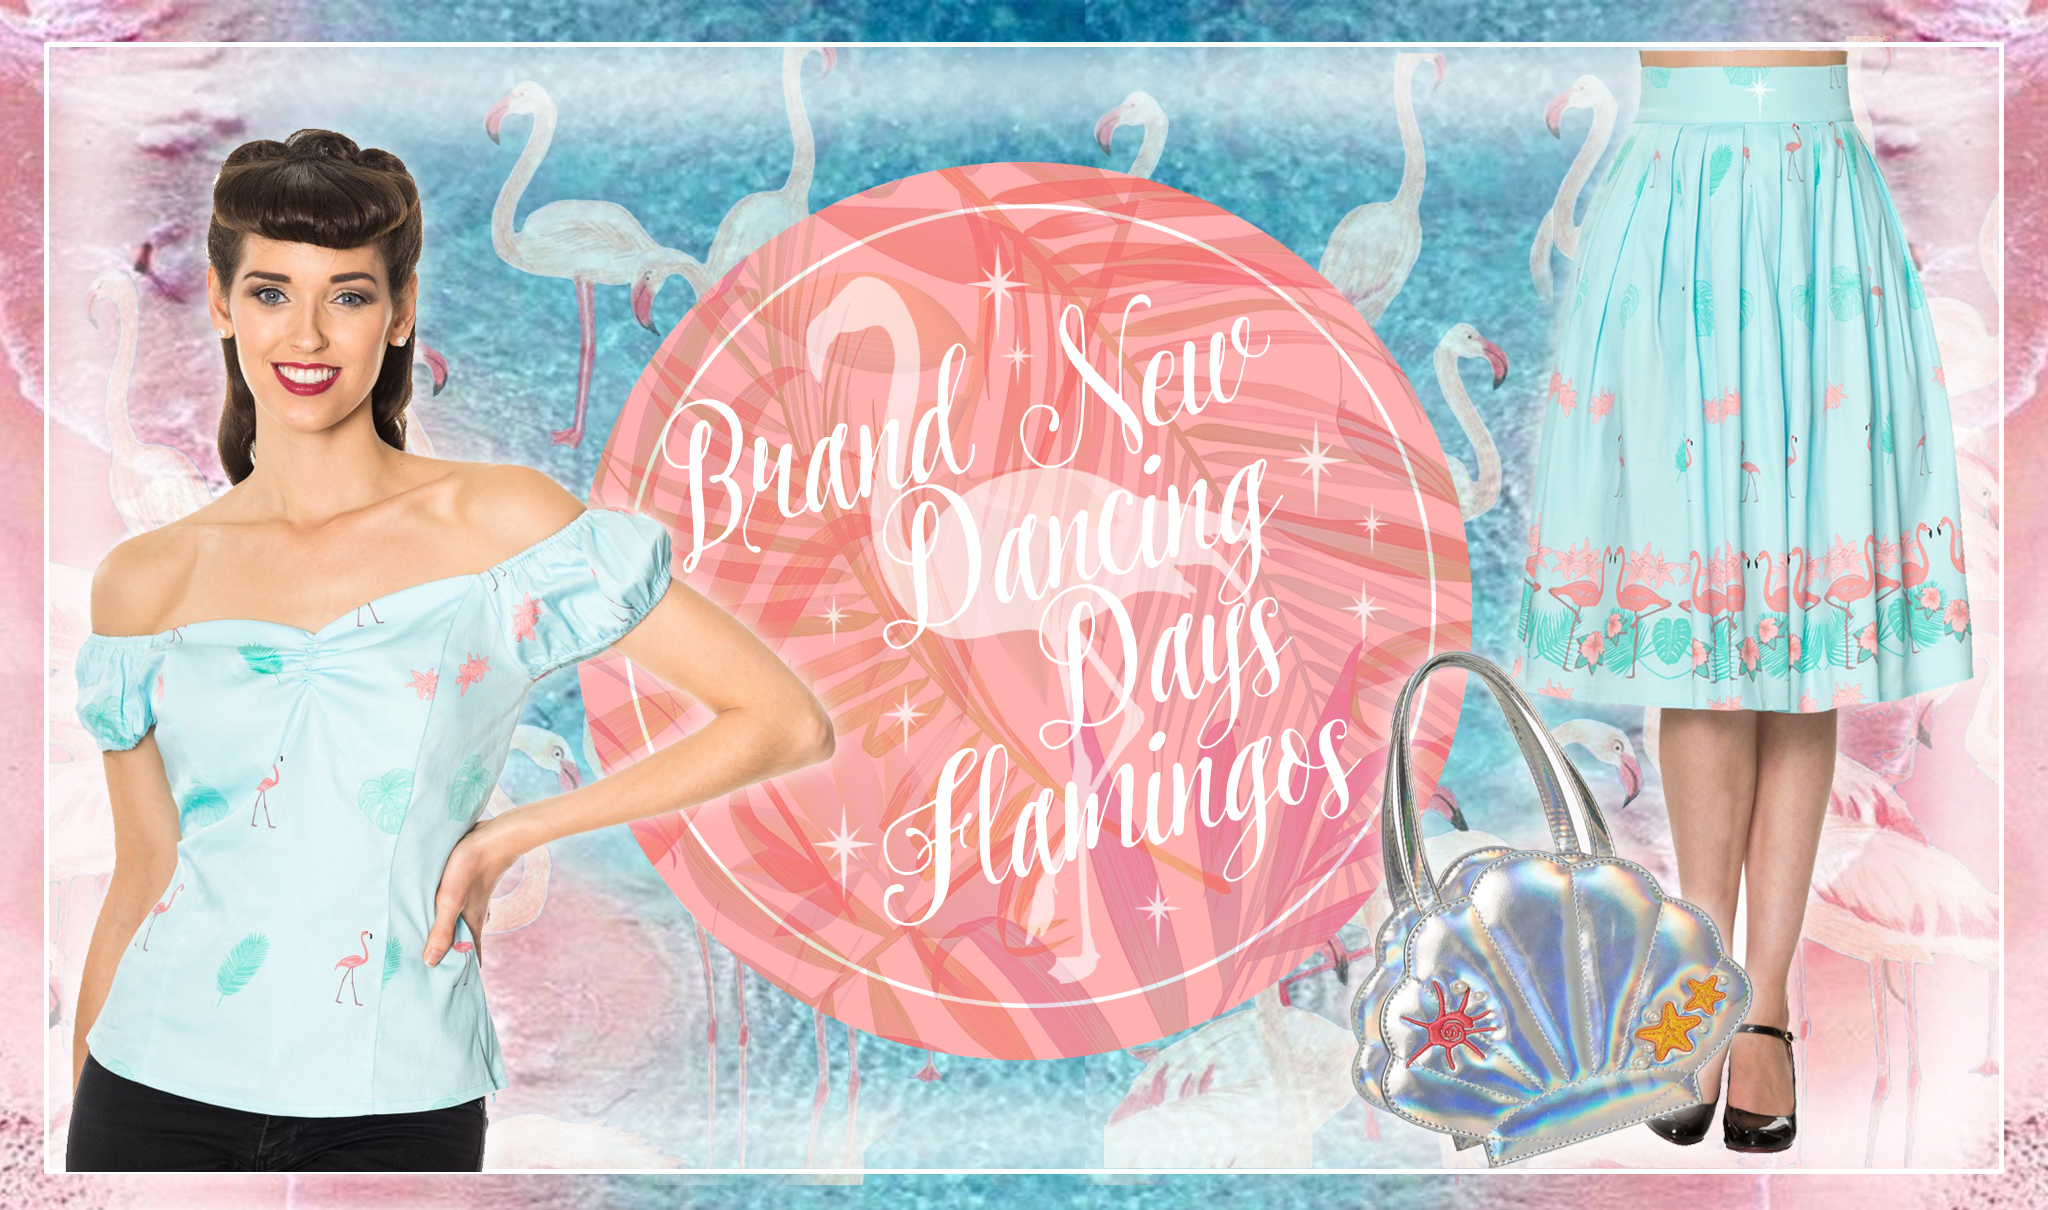 Brand new from Dacing Days - Fabulous Flamingo clothing